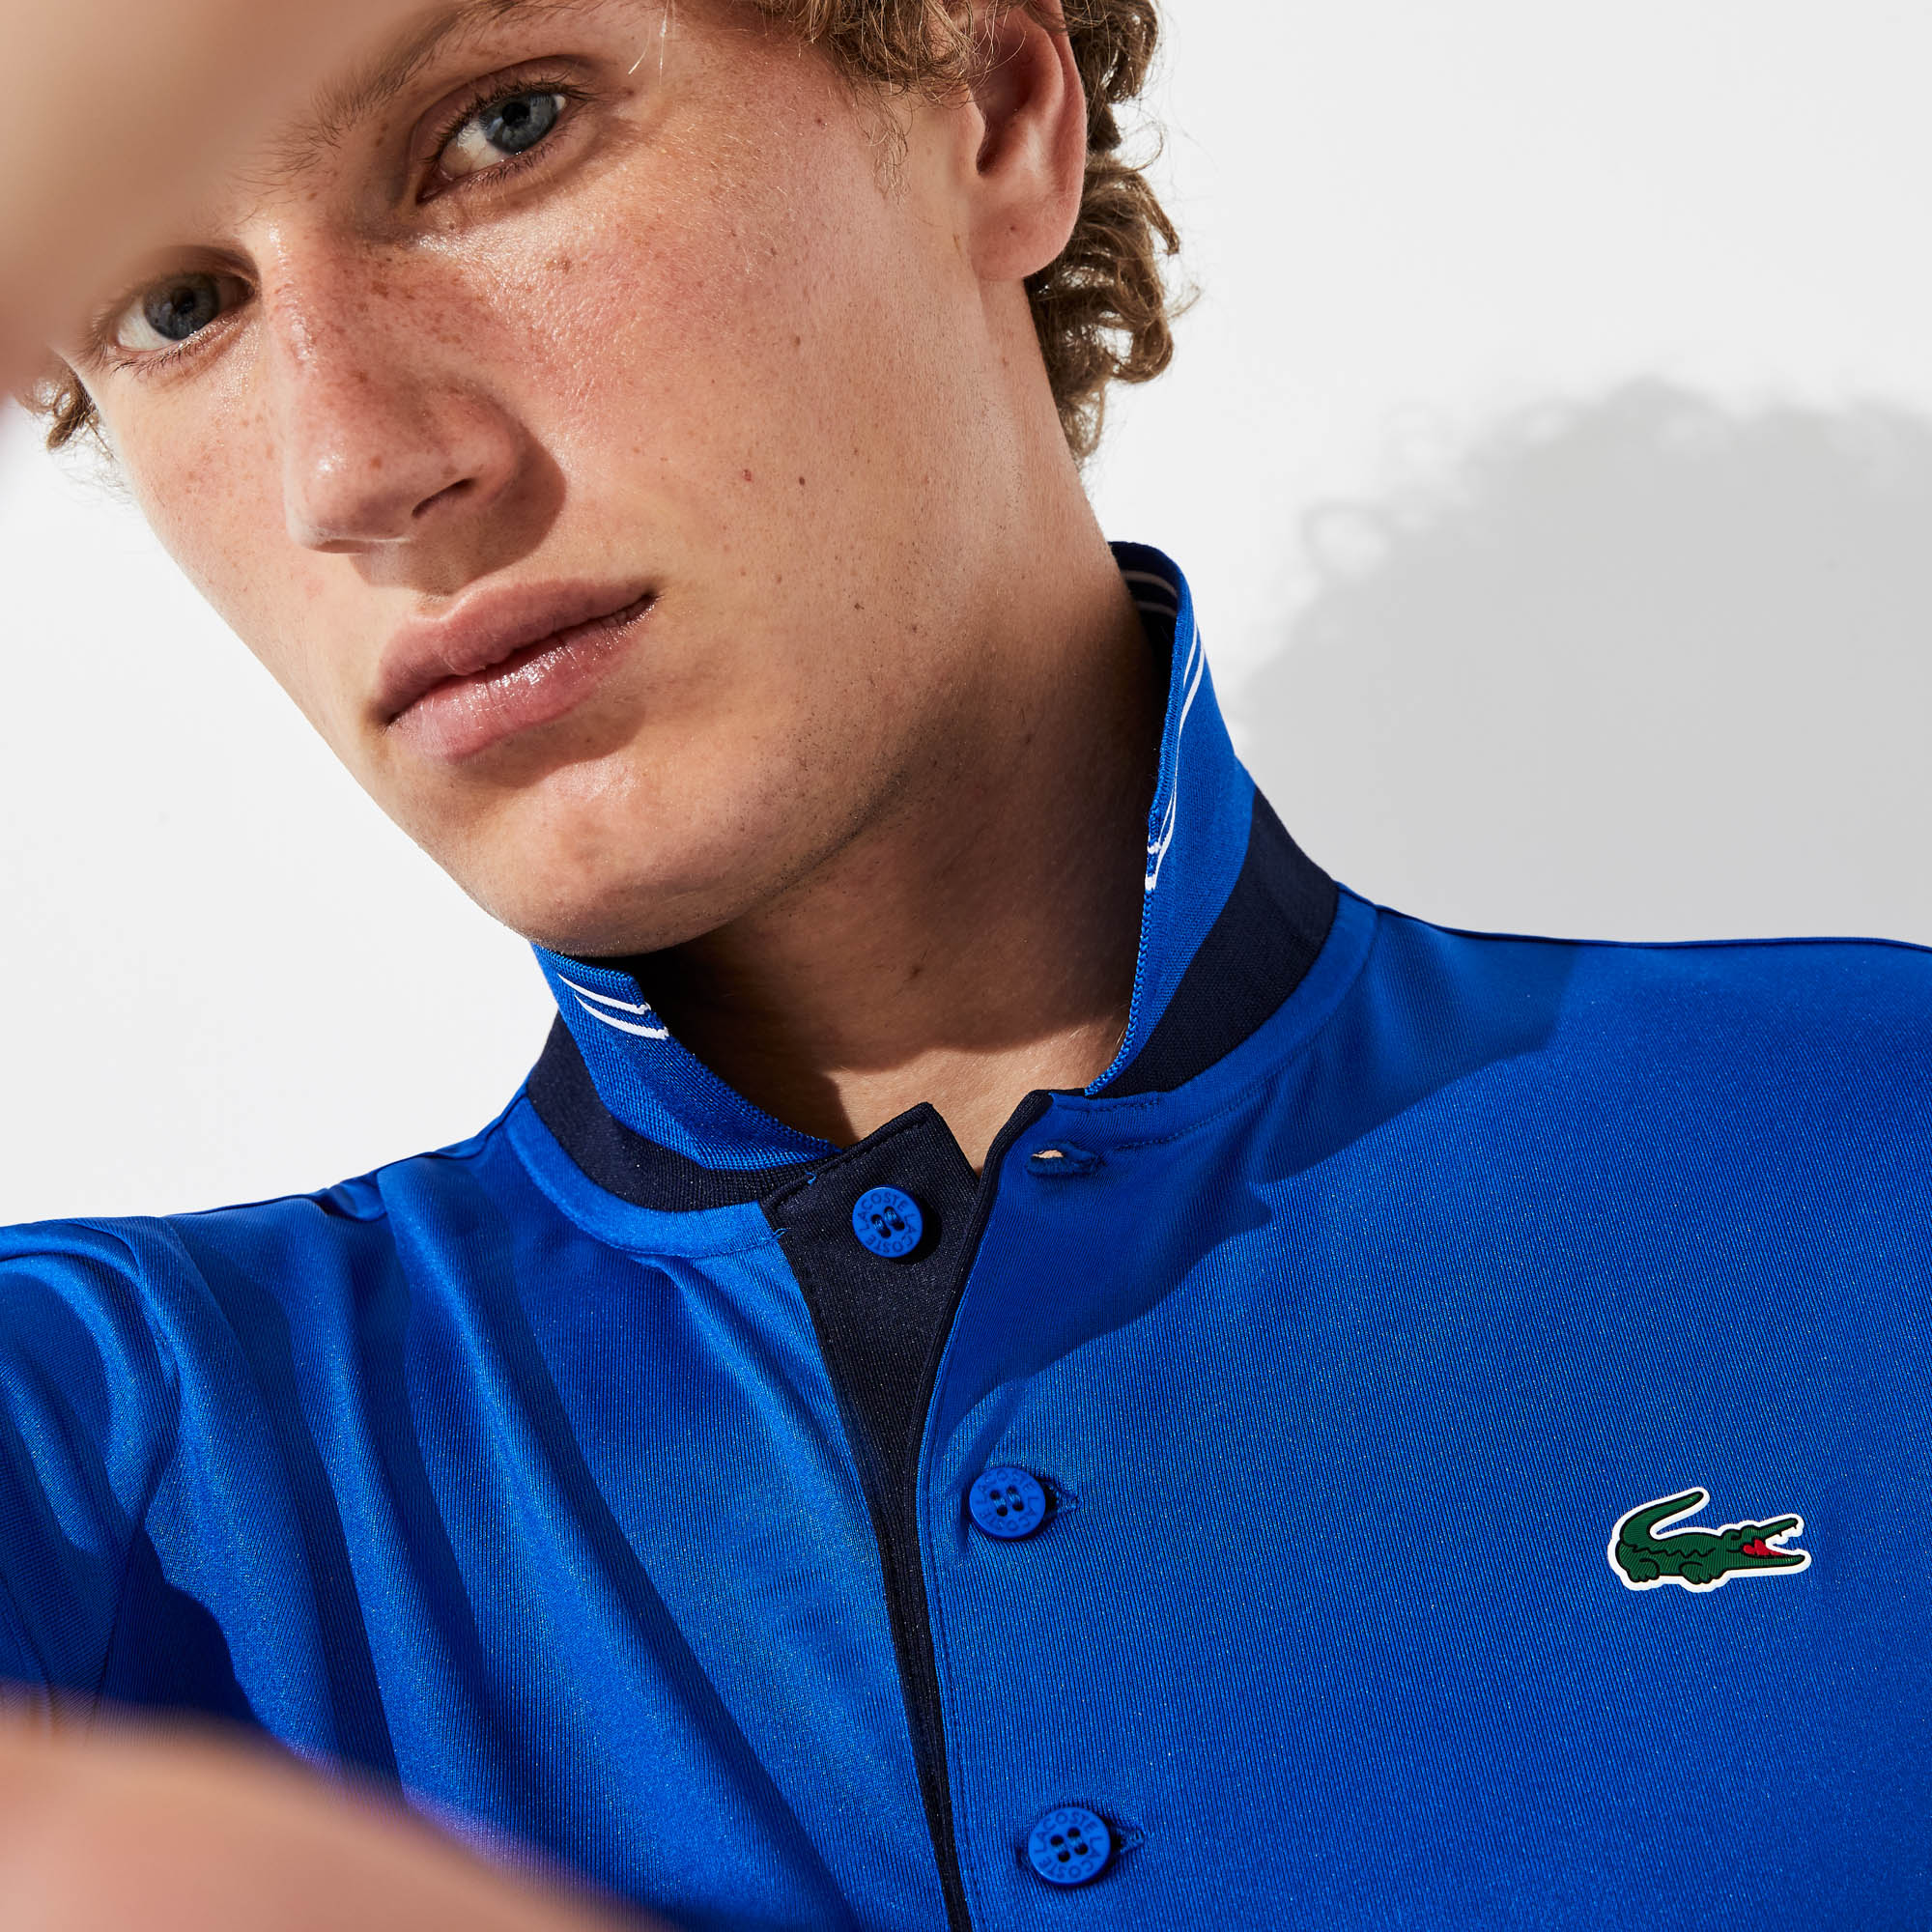 Lacoste Tops Men's SPORT Breathable Stretch Jersey Golf Polo